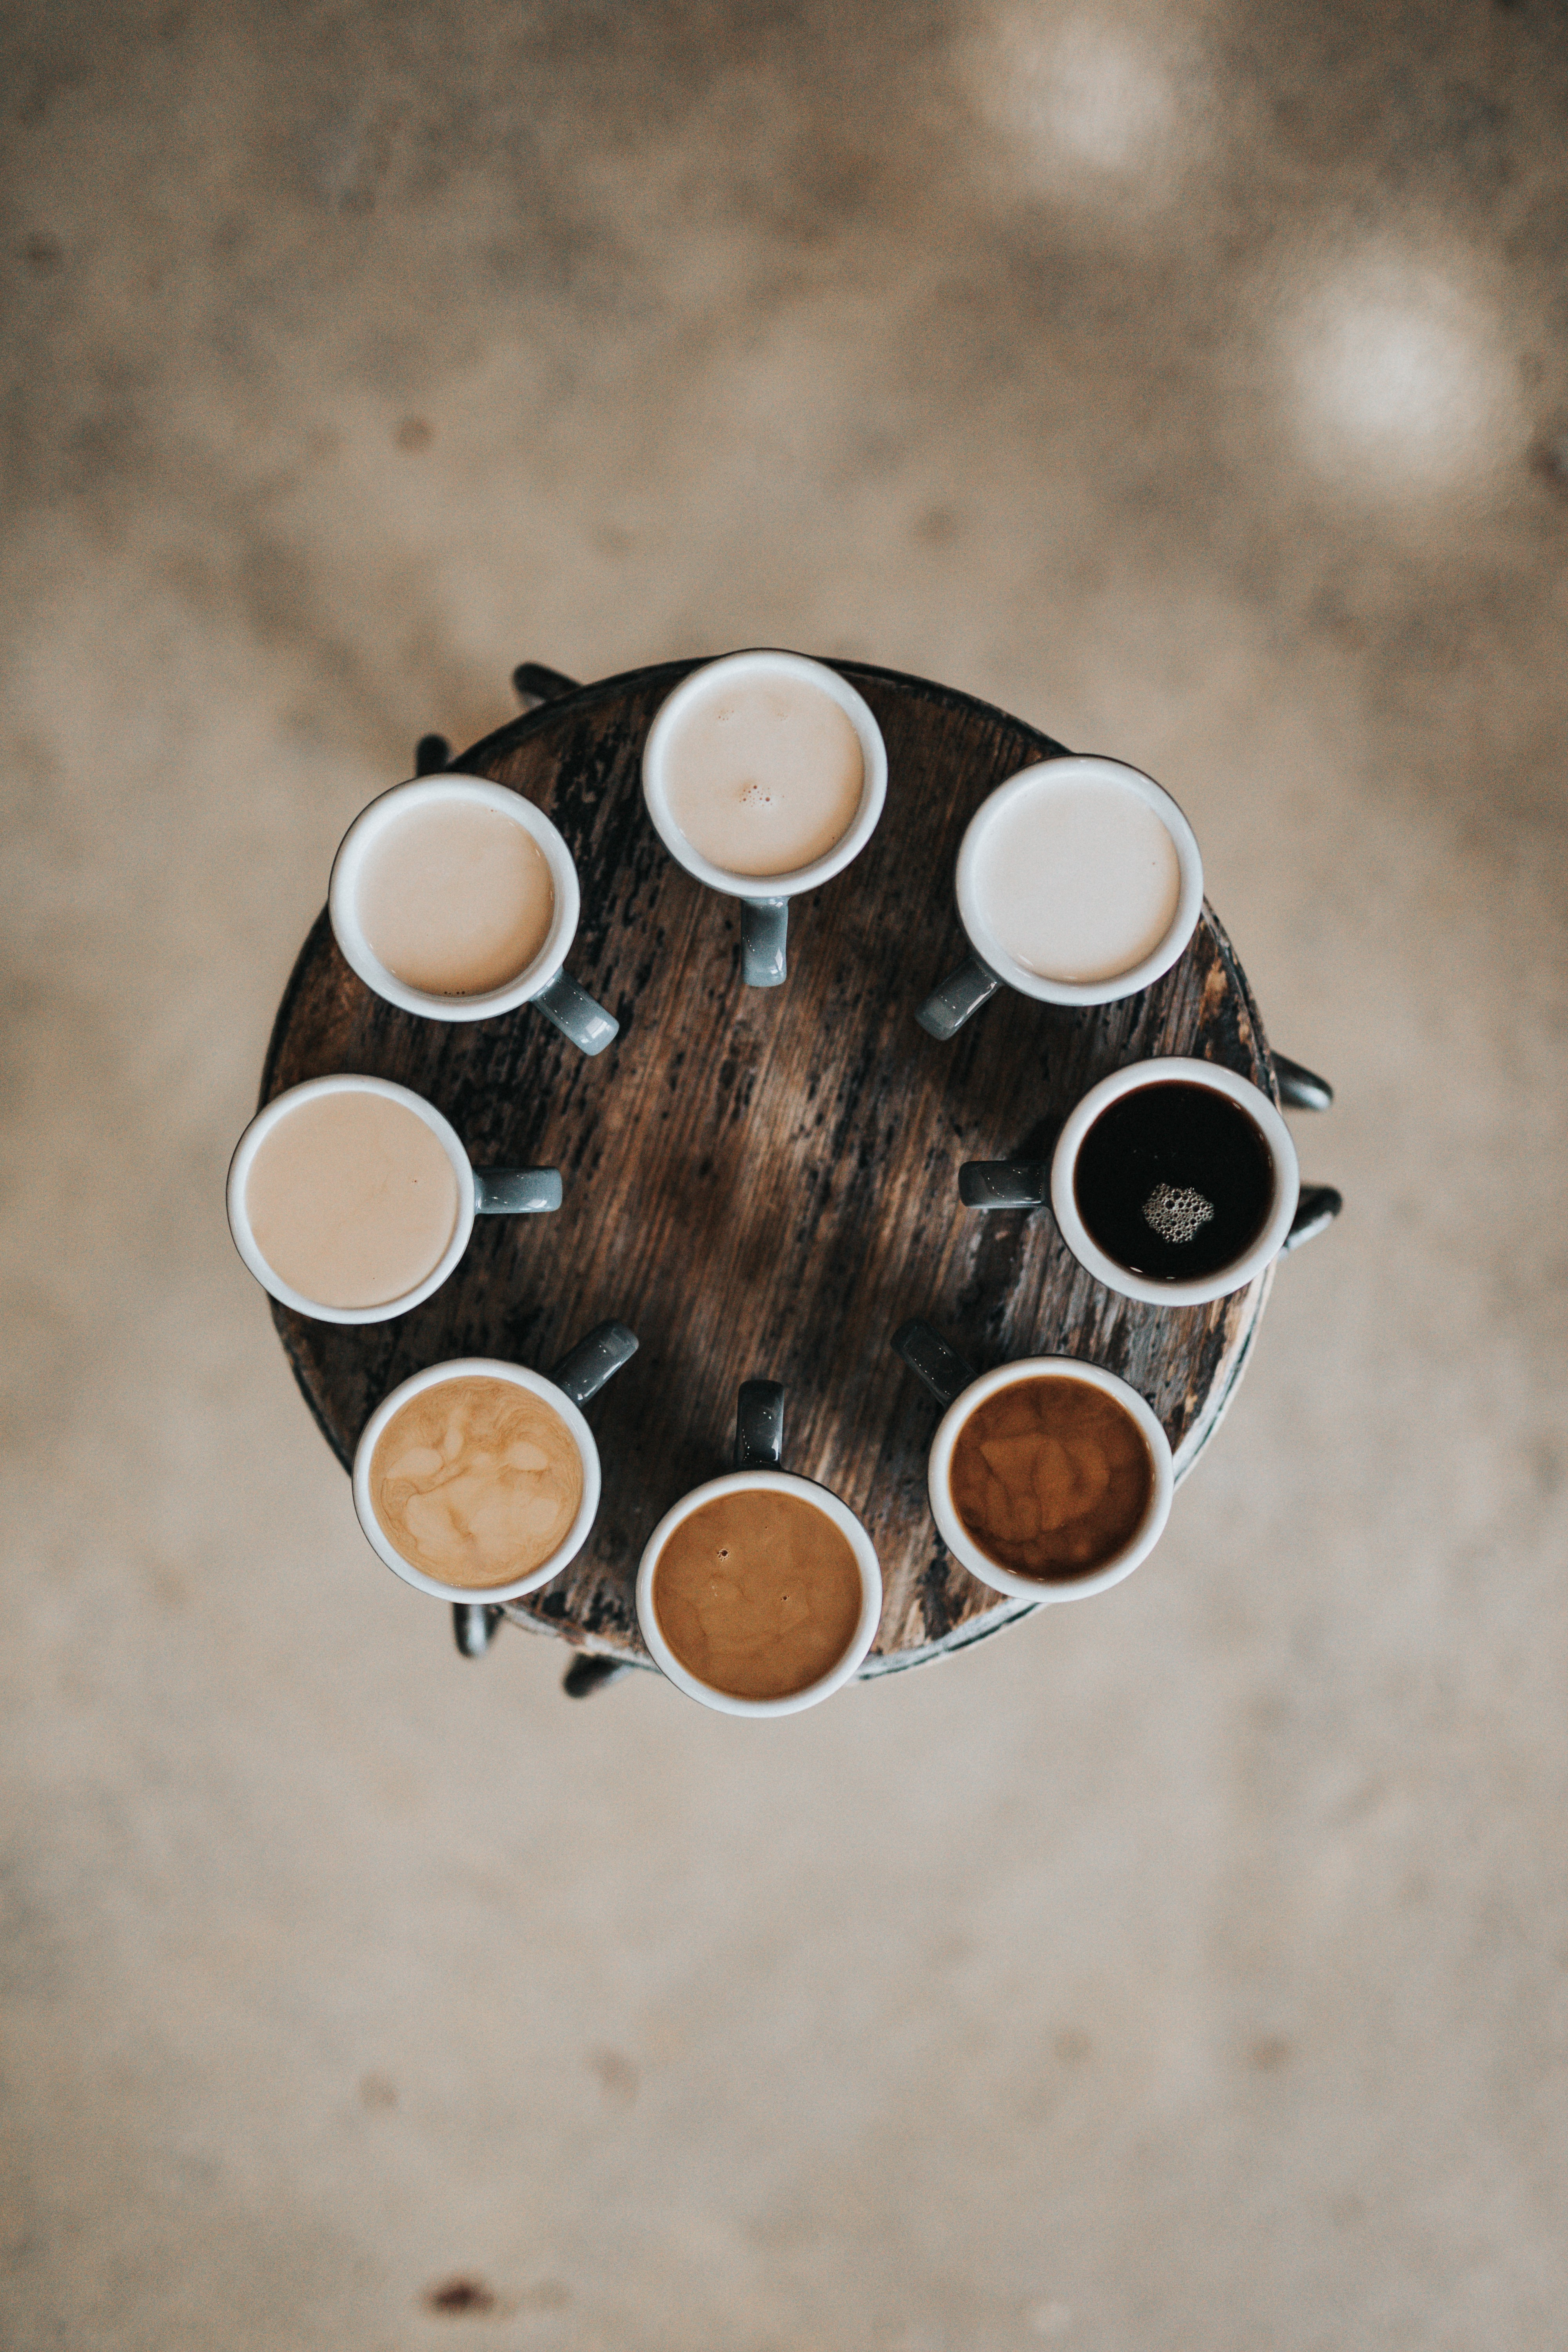 Coffee in many forms represents break time and the time to wake up.